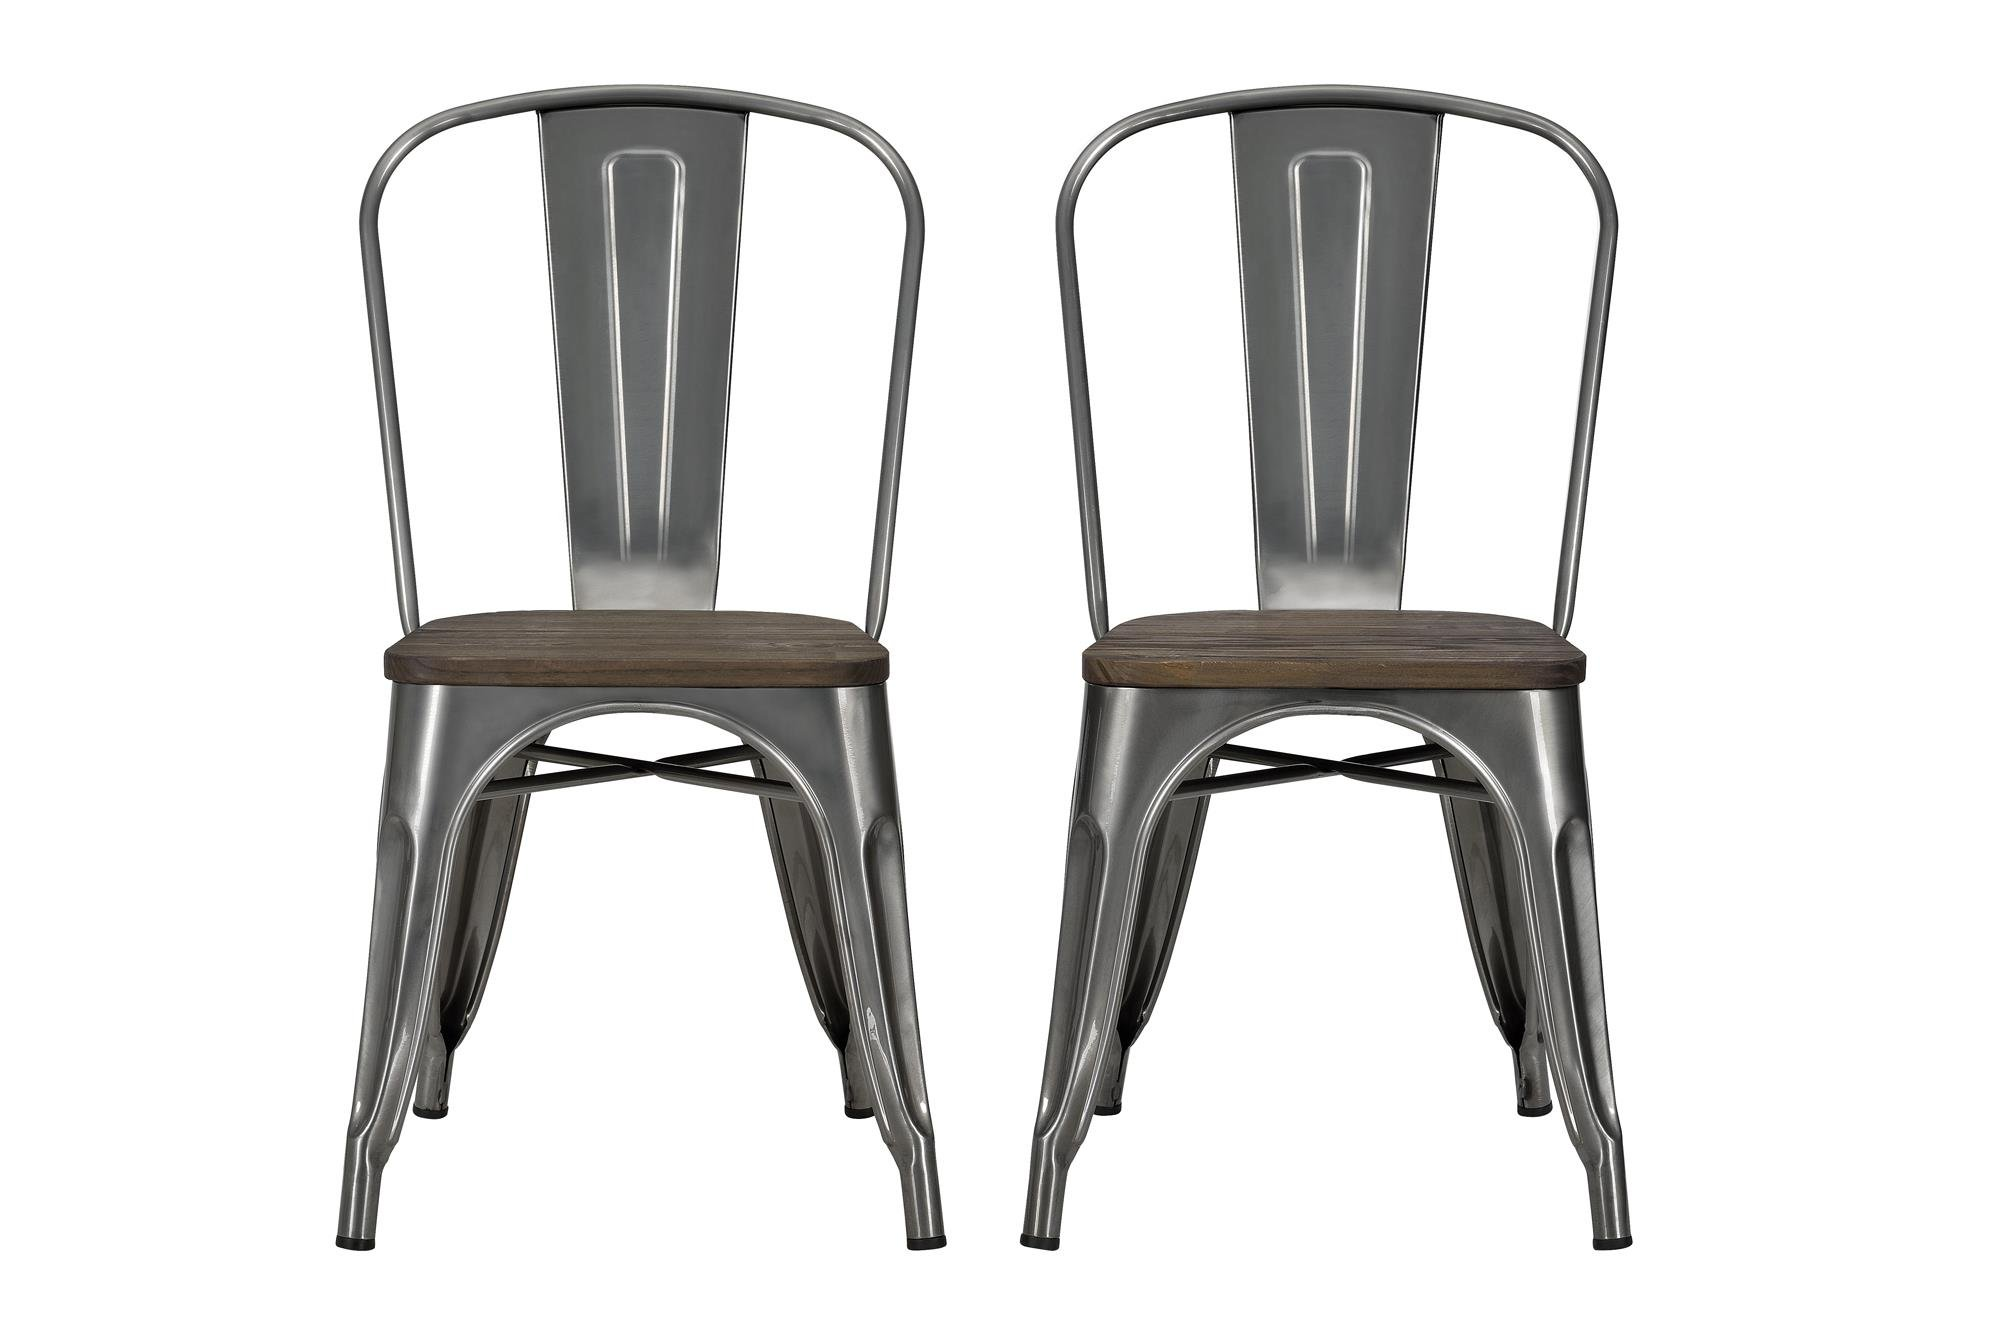 DHP Fusion Metal Dining Chair with Wood Seat, Set of two, Antique Gunmetal by DHP (Image #1)